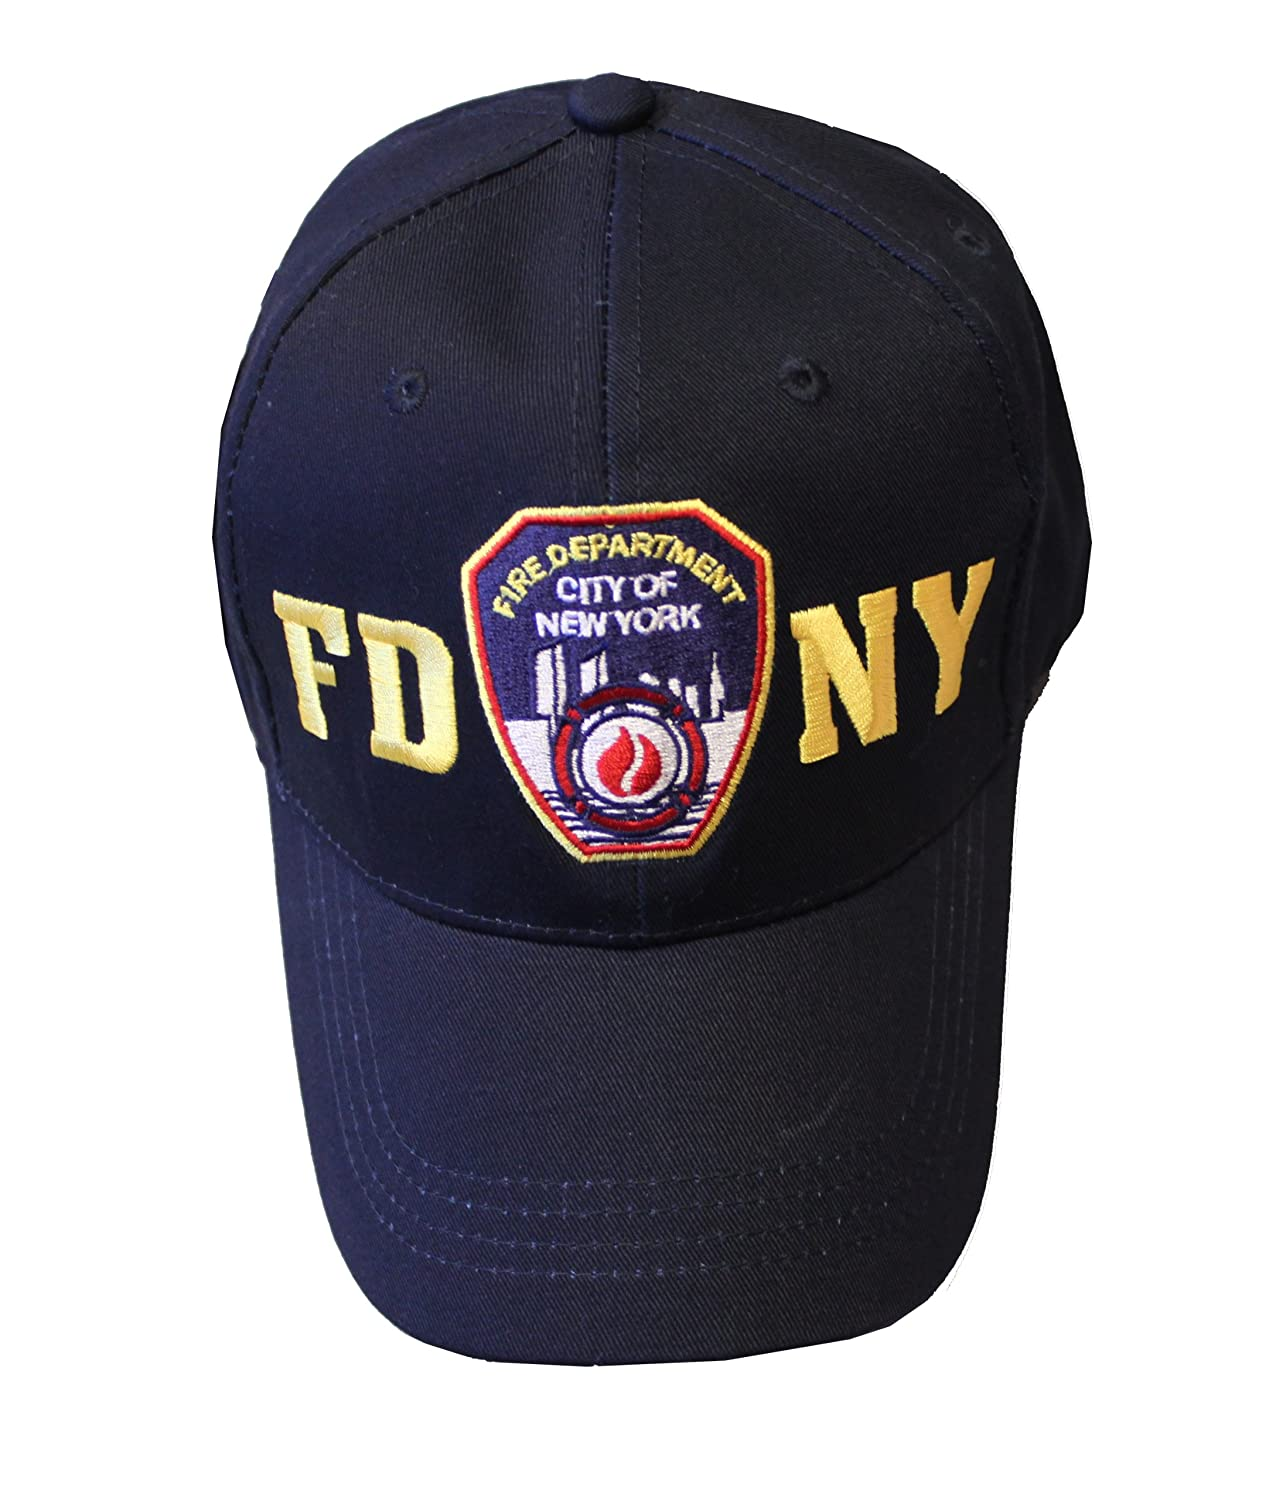 Amazon.com: FDNY Junior Kids Baseball Hat Fire Department of New York Navy Blue One Size: Clothing